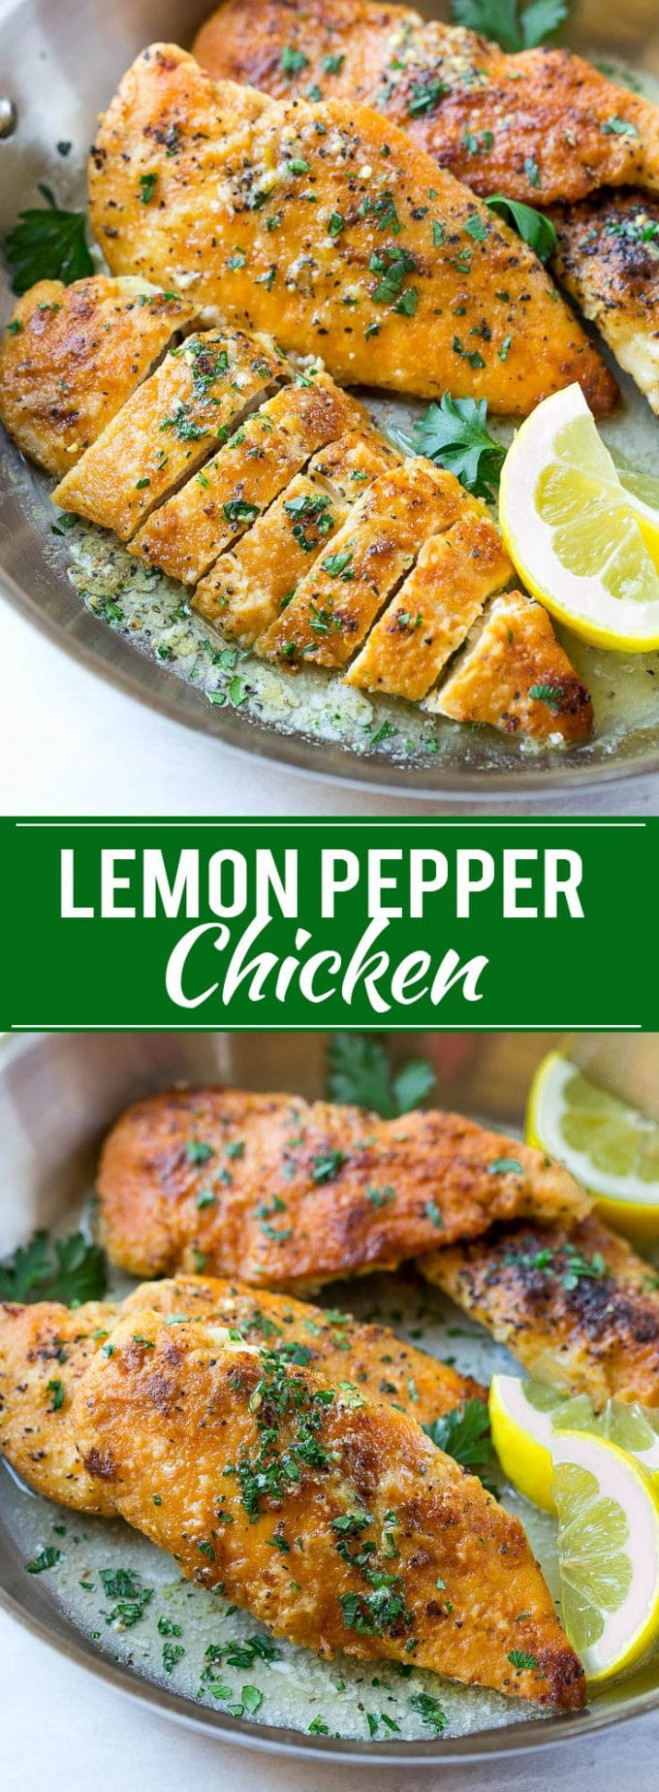 Lemon Pepper Chicken - Dinner At The Zoo - Pinterest Recipes Dinner